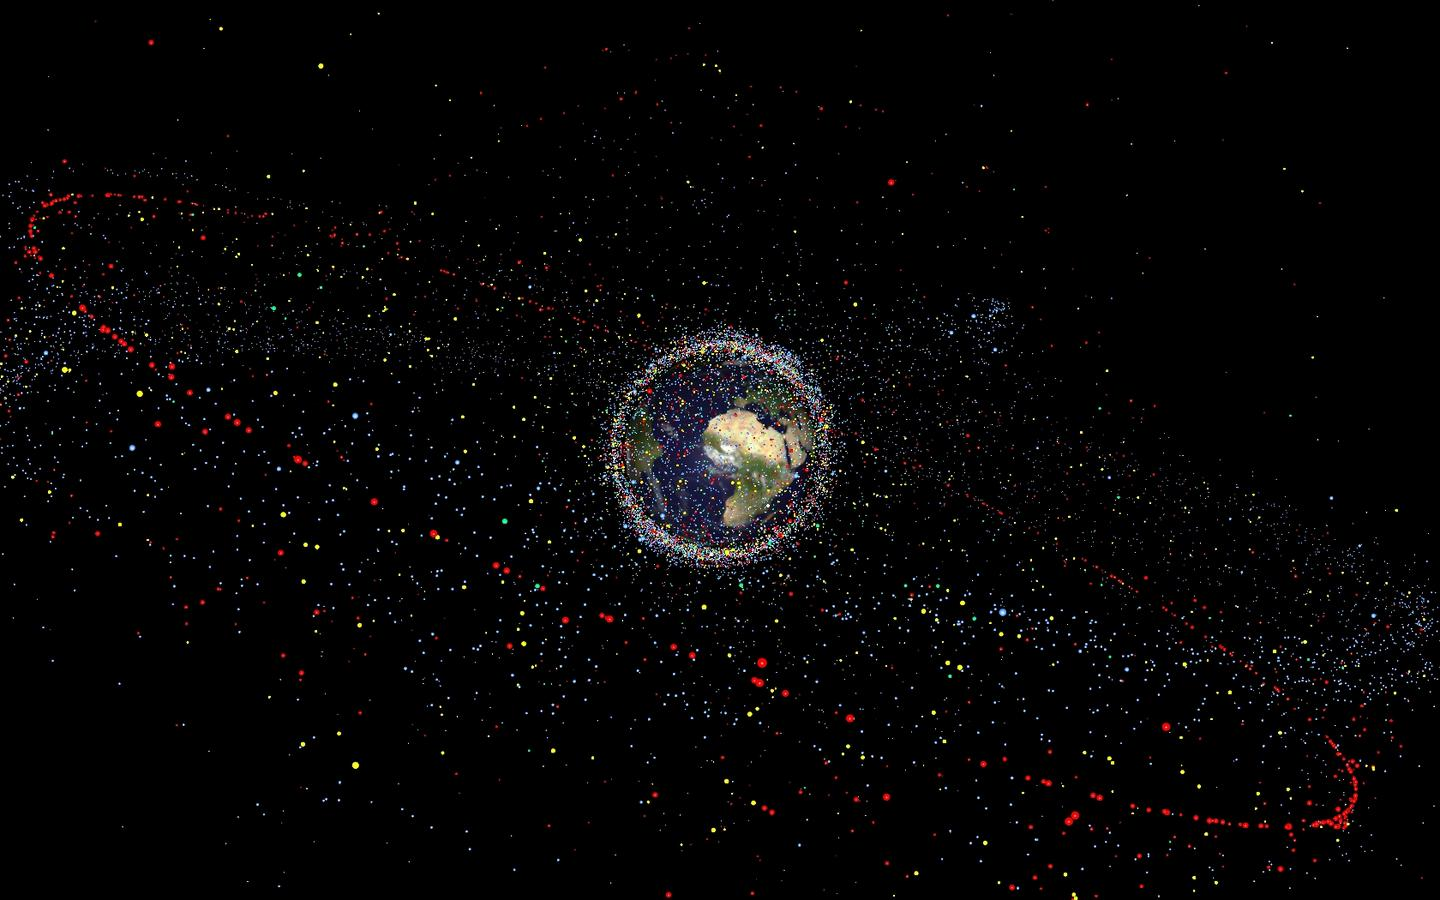 Earth is surrounded by a cloud of debris that is becoming increasingly hazardous to operational satellites (Image: ESA)